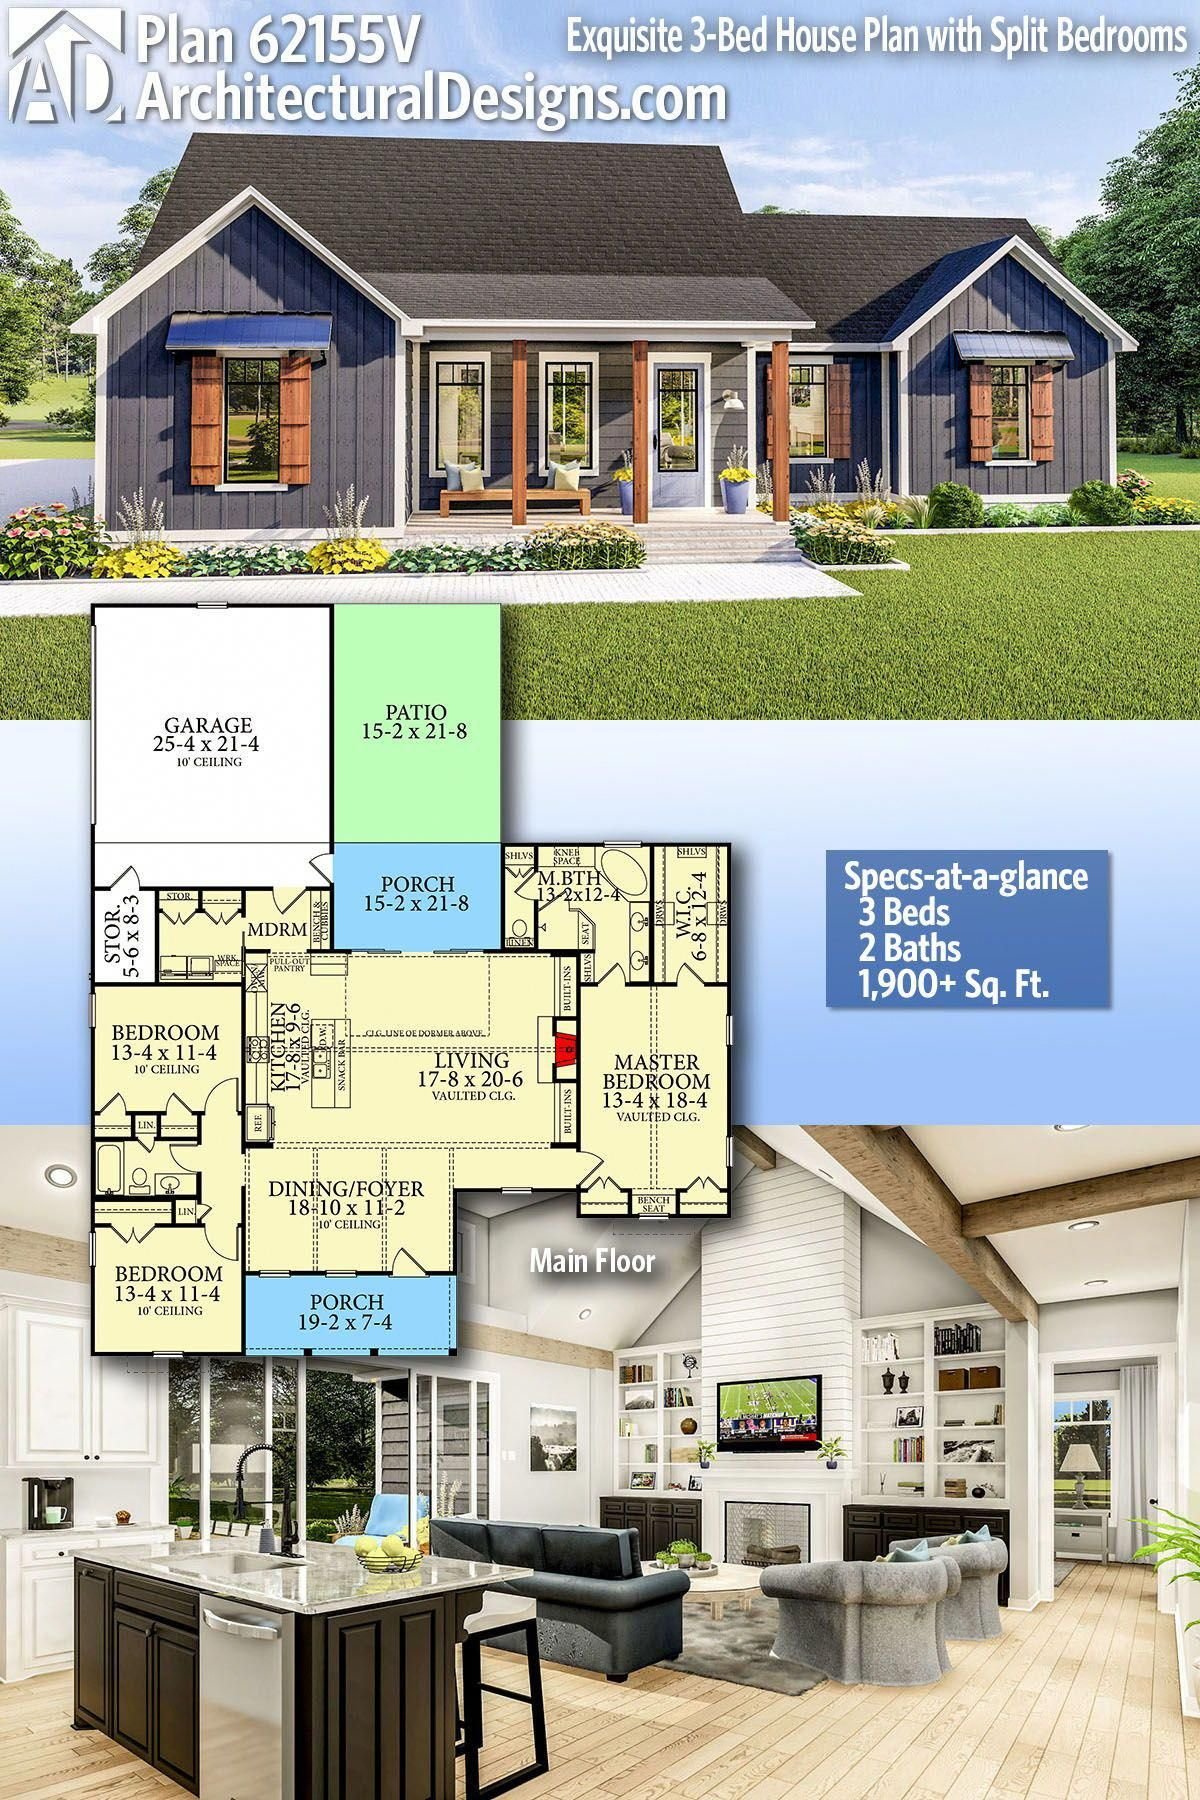 Architectural Designs Home Plan 62155v Gives You 3 Bedrooms 2 Baths And 1 900 Sq Ft Ready When You Are W House Plans Farmhouse New House Plans House Plans